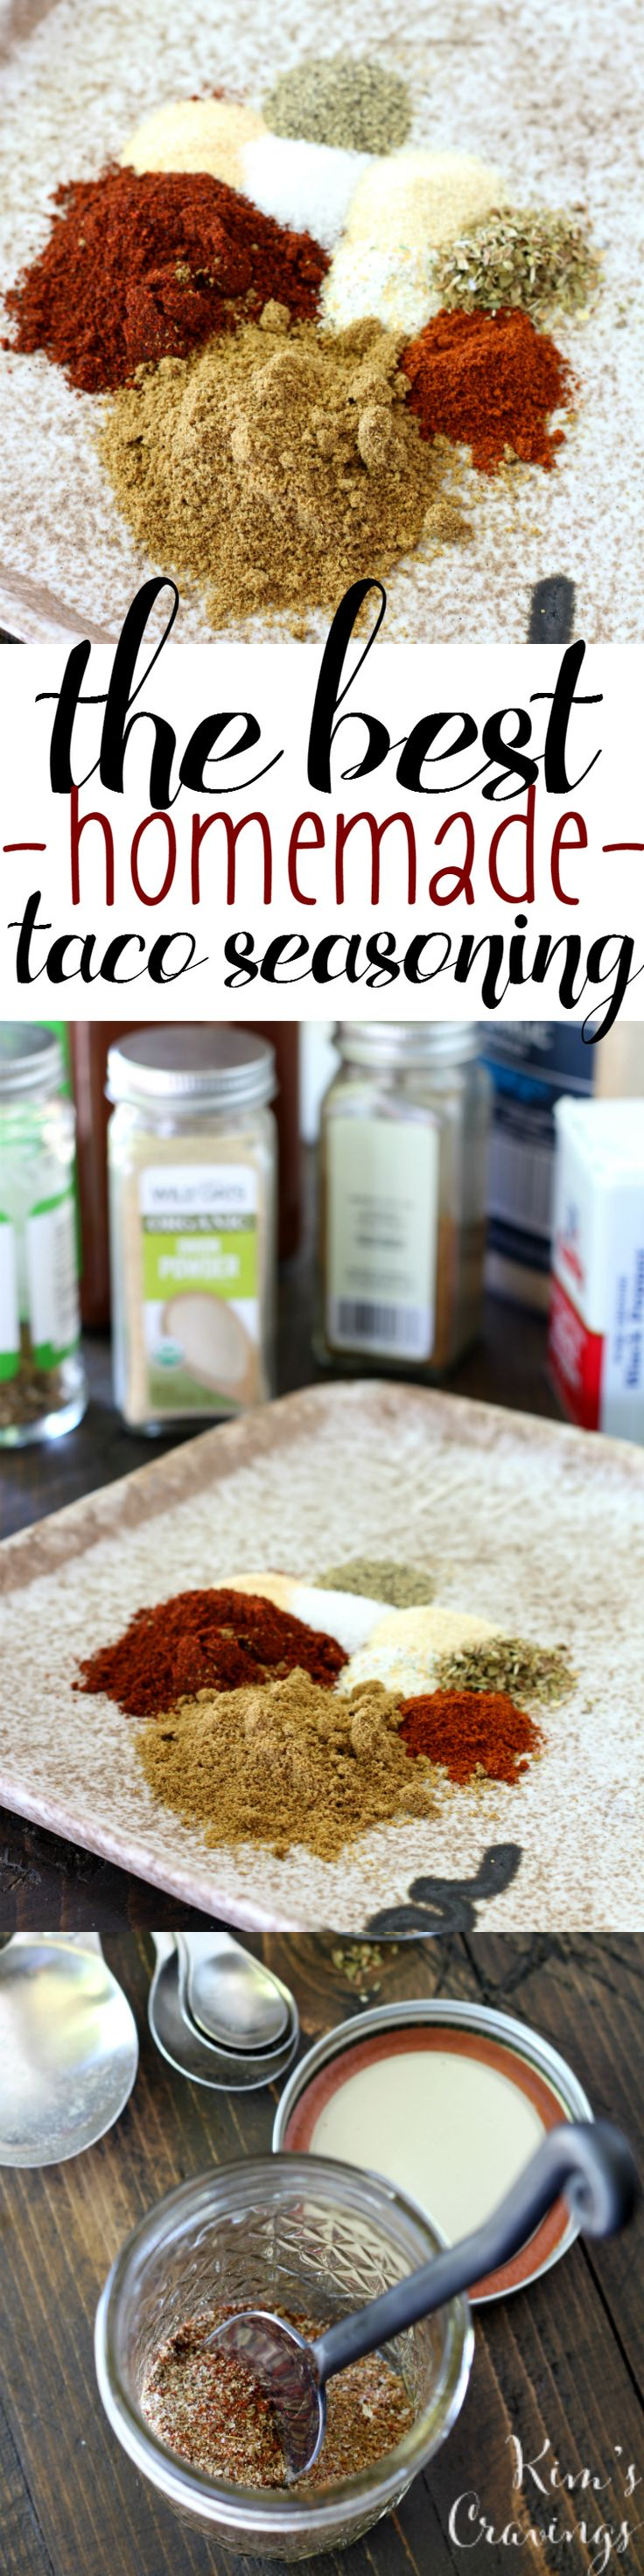 The BEST Homemade Taco Seasoning- free of MSG, additives and loads of sodium. It's also 100% natural, super easy and full of flavor!